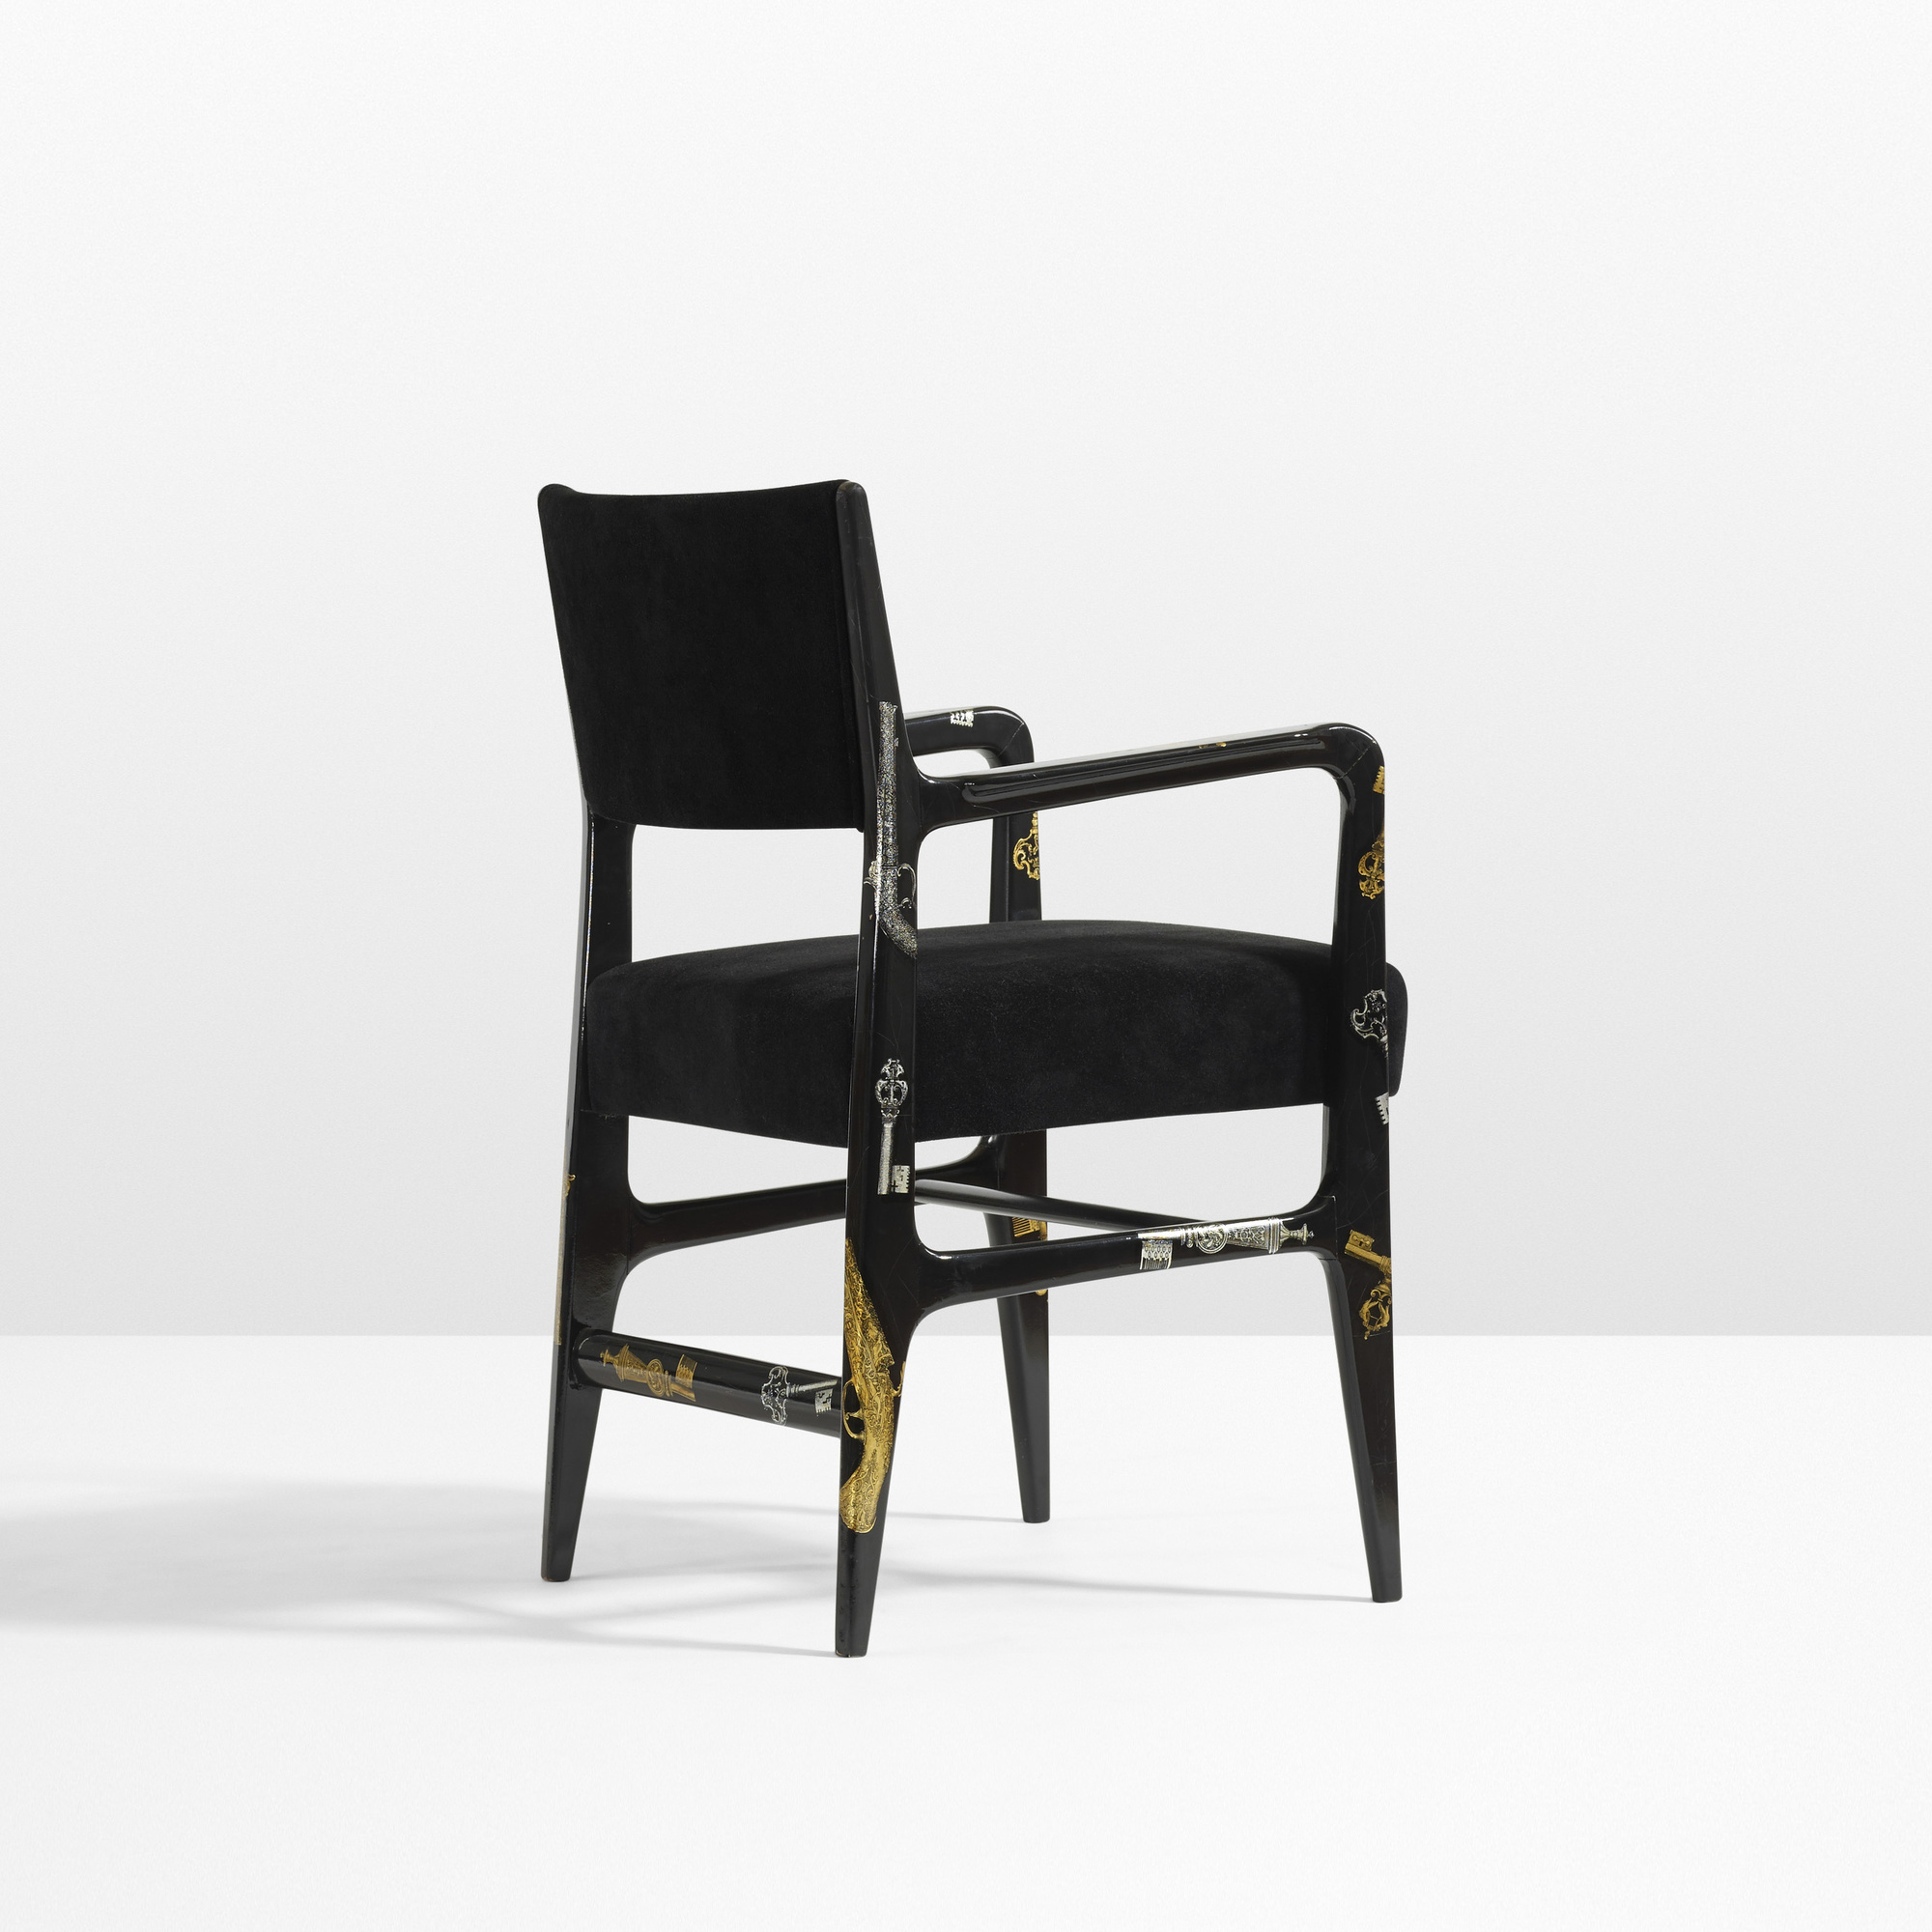 8: Gio Ponti And Piero Fornasetti / Rare Armchair (1 Of 4) ...